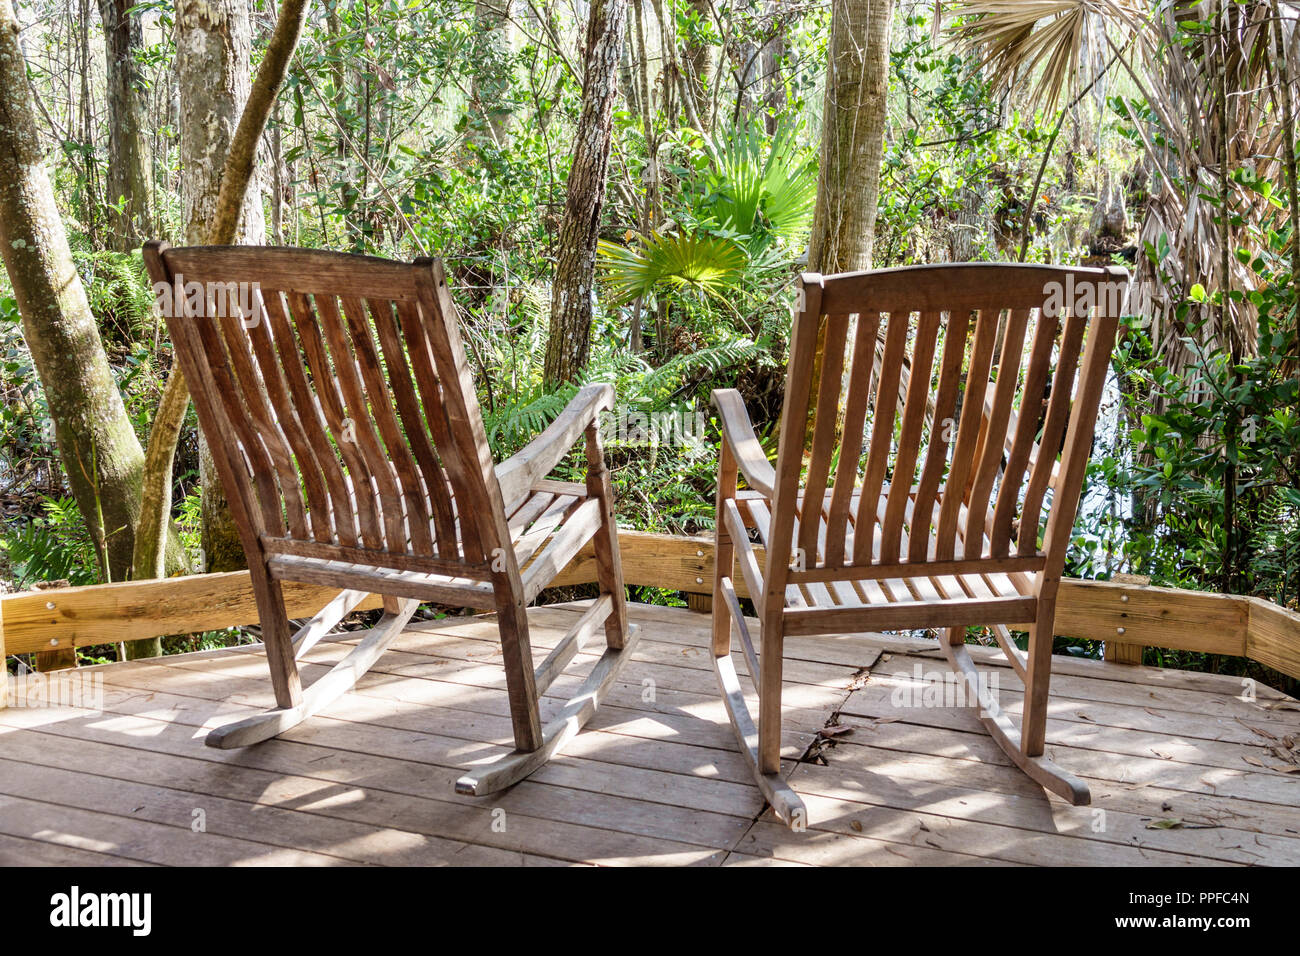 Grassy Waters Nature Preserve wetlands ecosystem rocking chair chairs - Stock Image